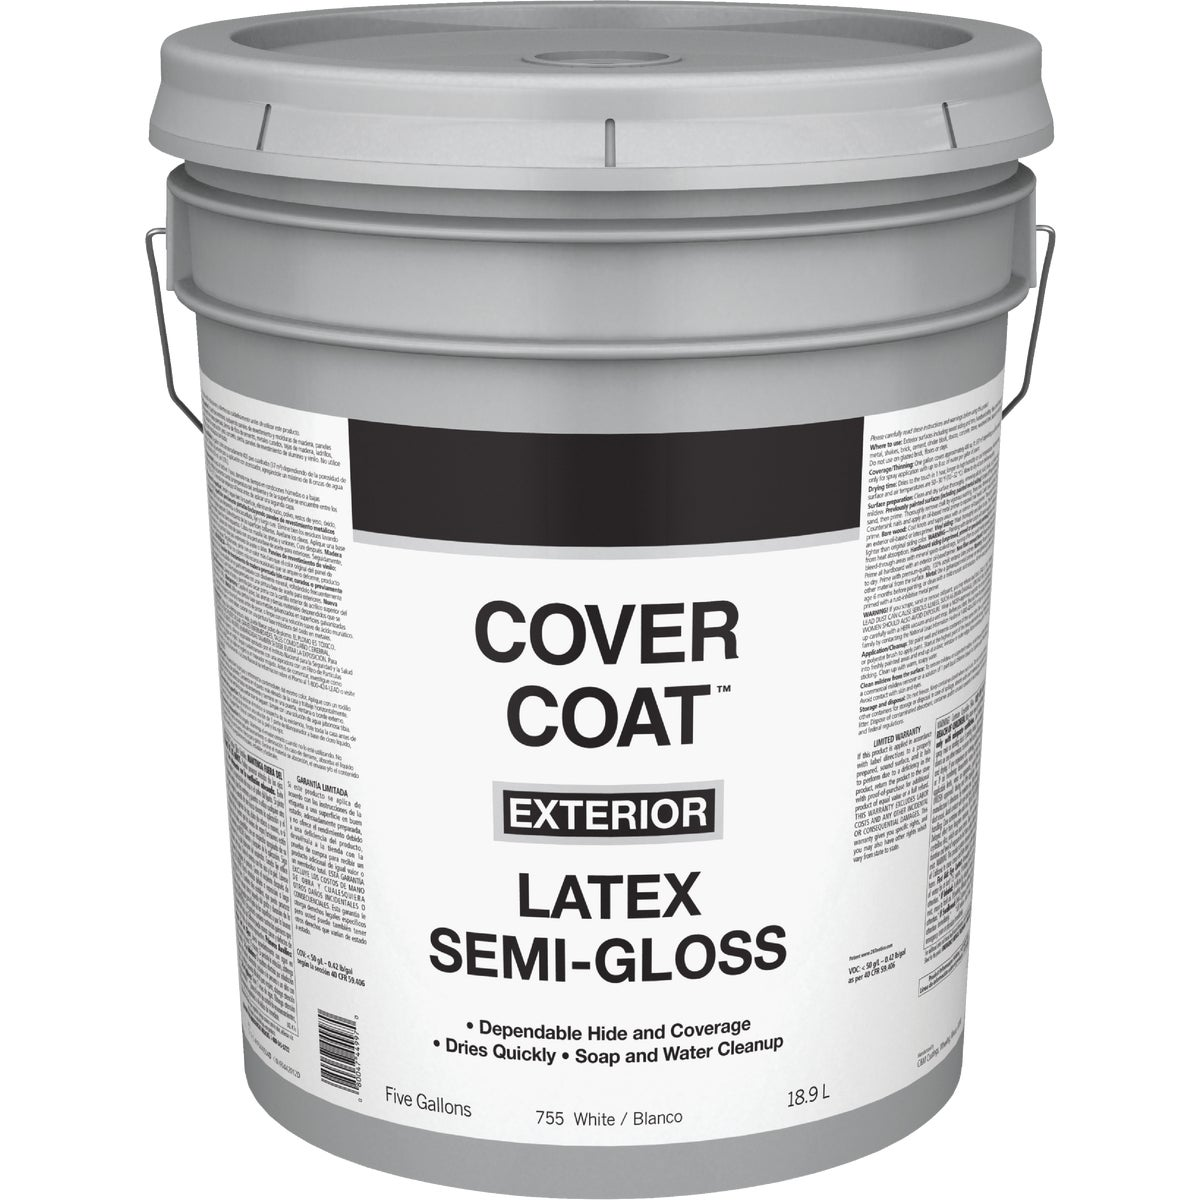 EXT S/G WHITE PAINT - 044.0000755.008 by Valspar Corp